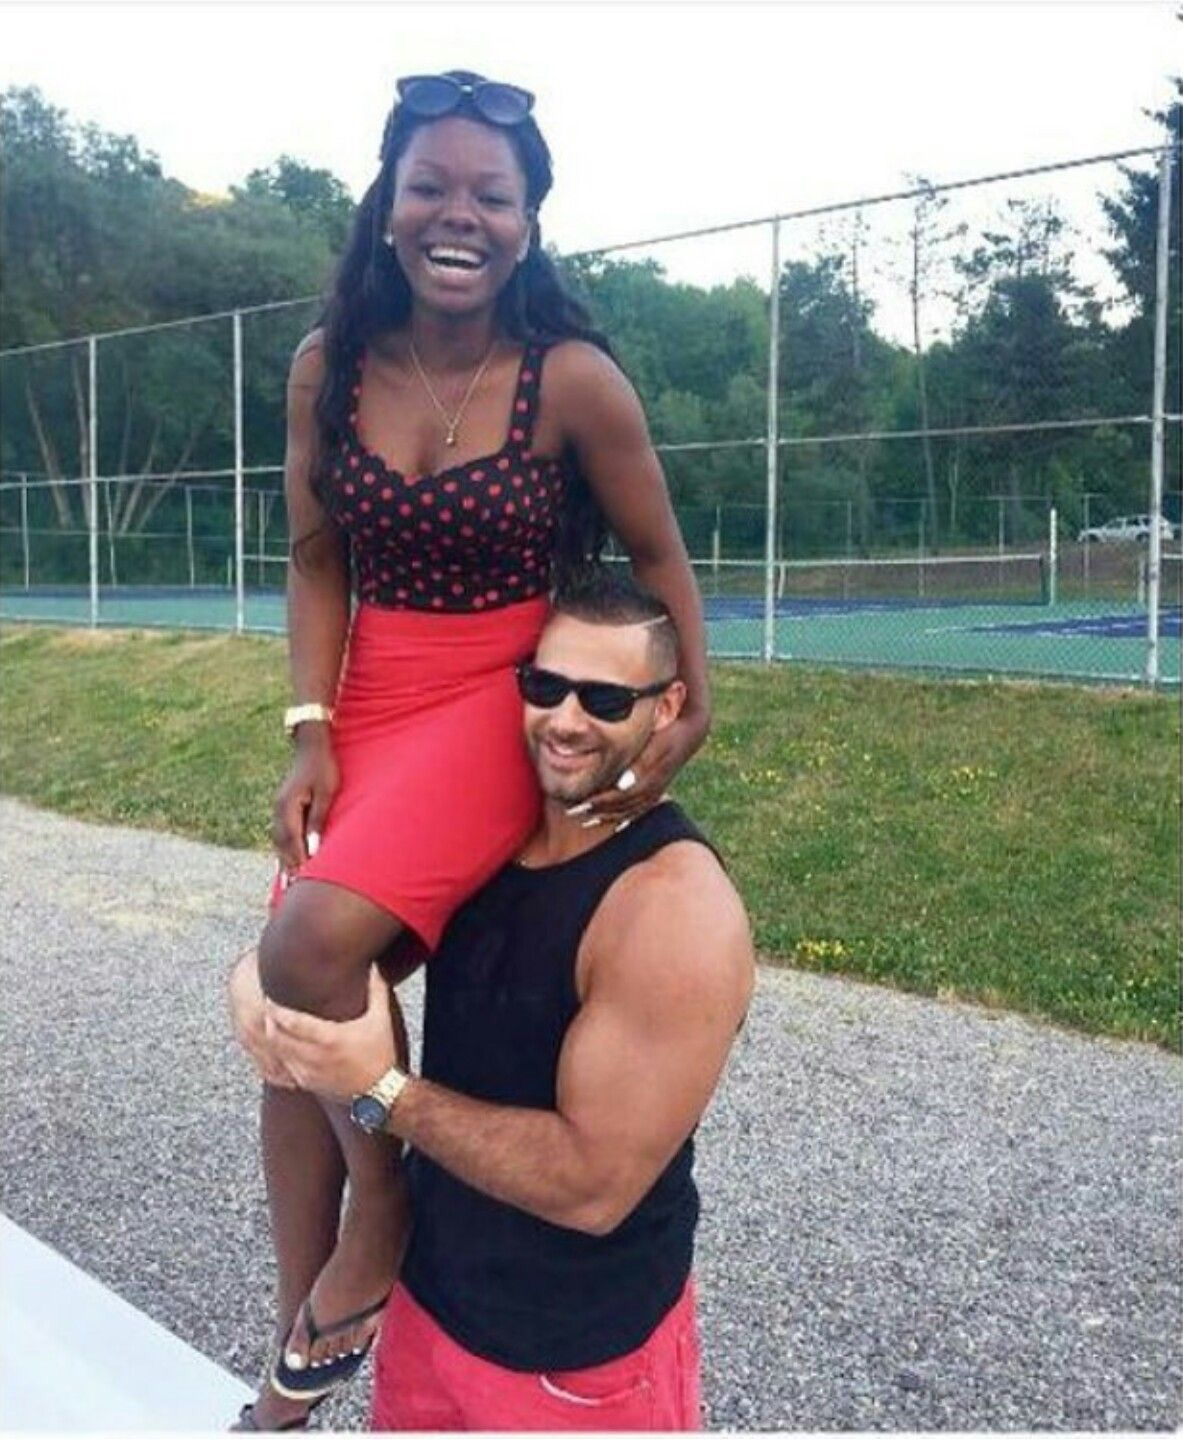 why is interracial dating such a big deal